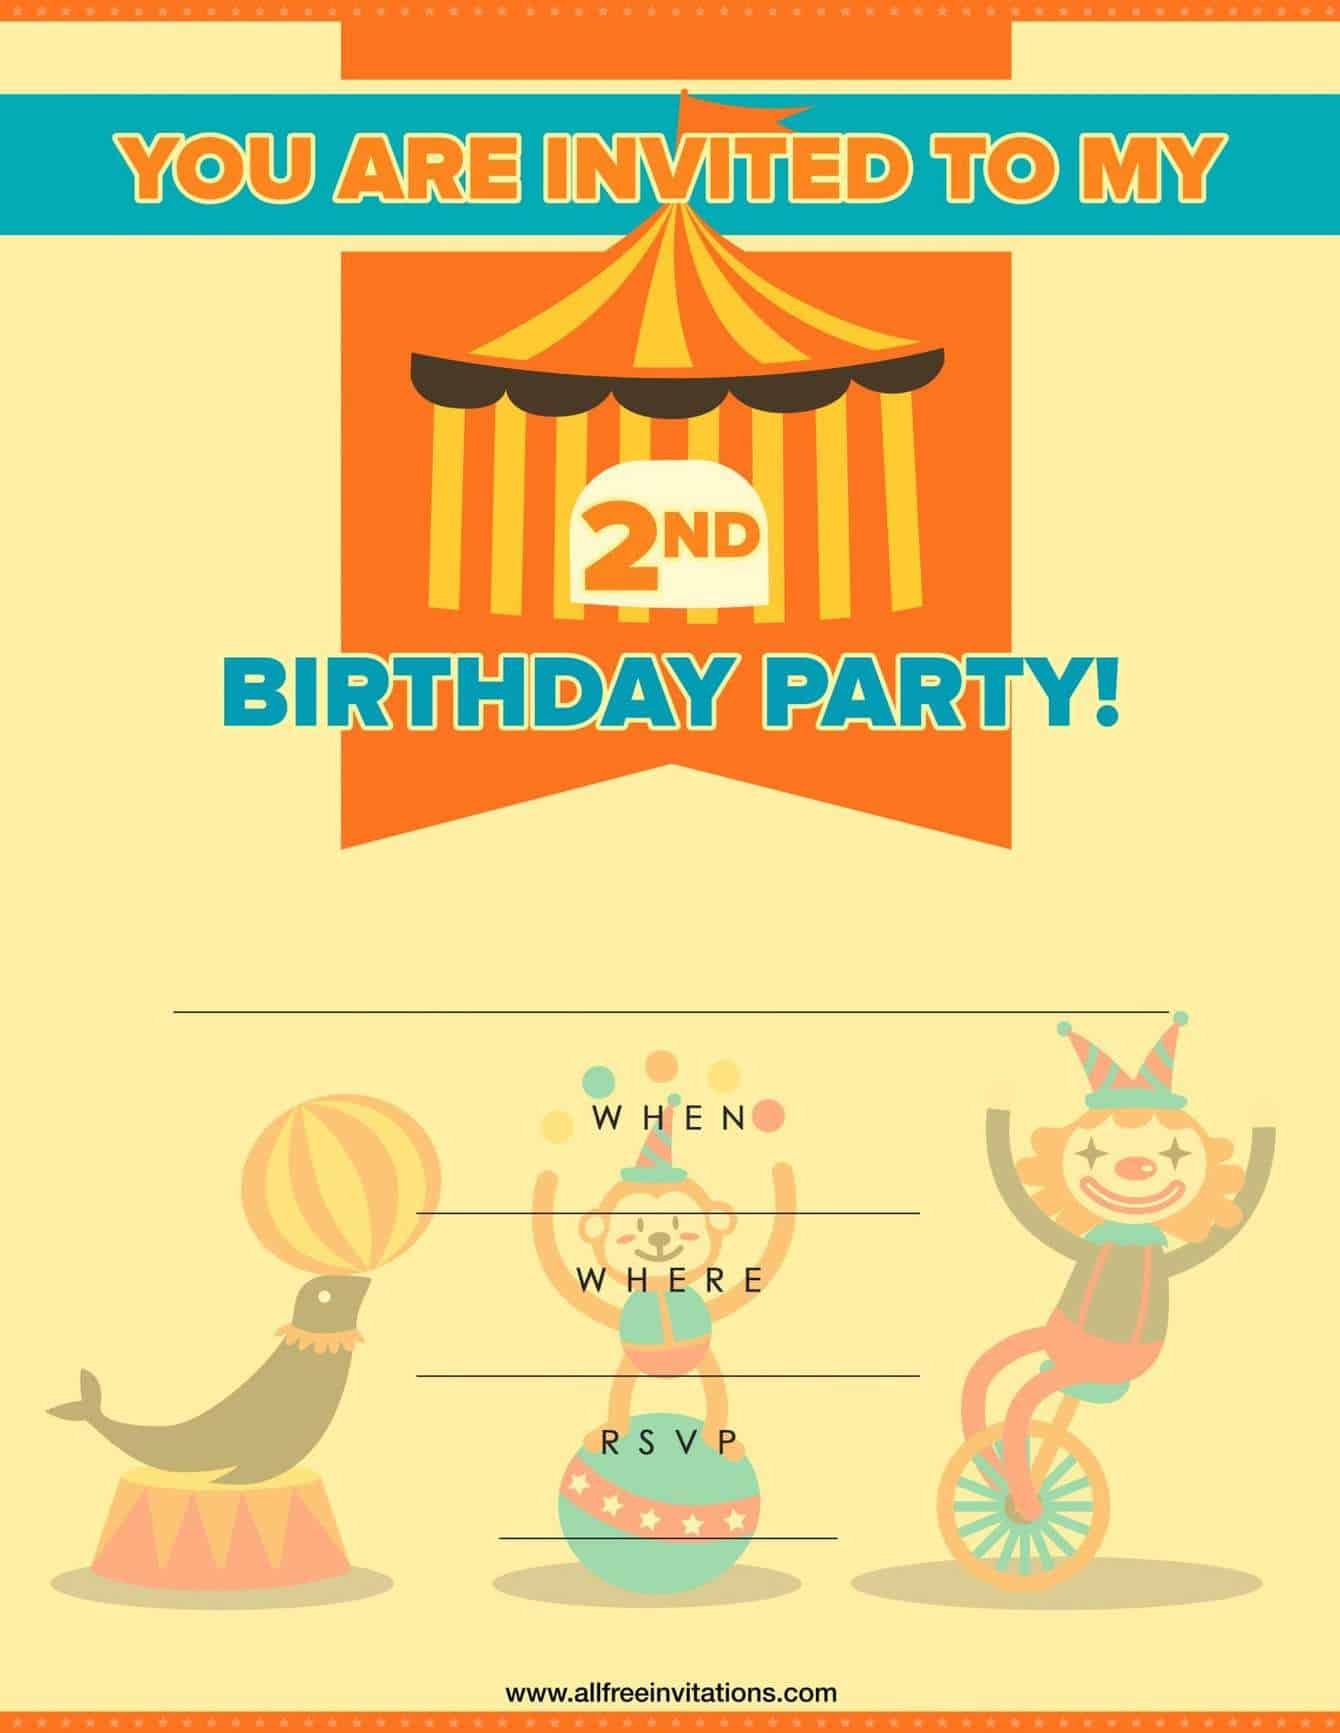 2nd Birthday Party Invitation Orange Circus